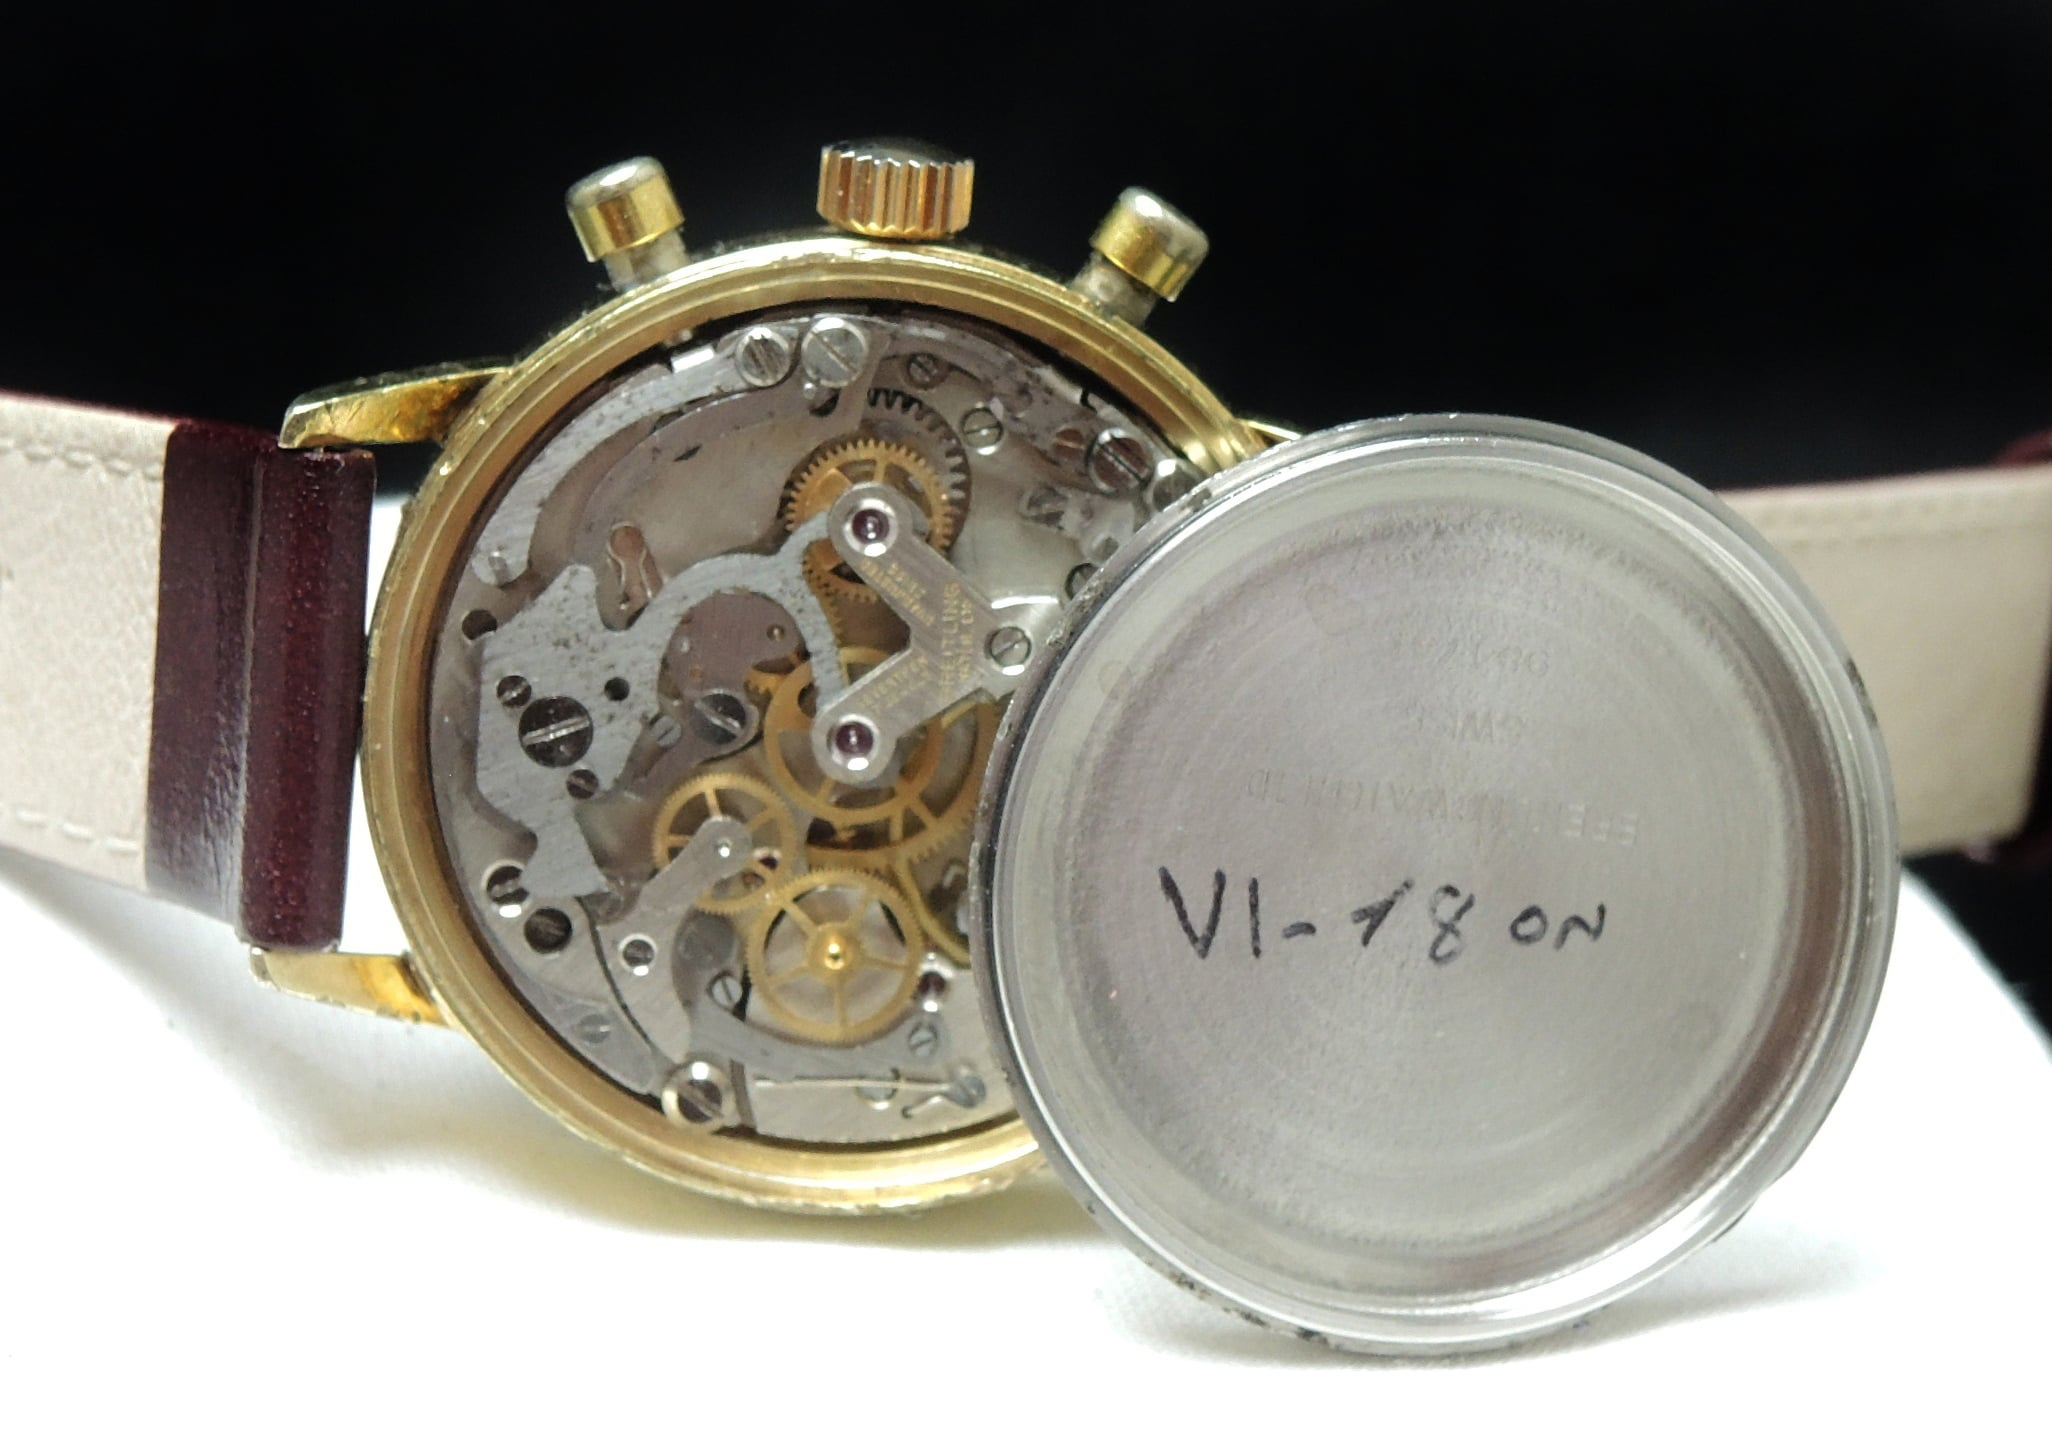 Serviced Vintage Breitling Top Time Reverse Panda dial